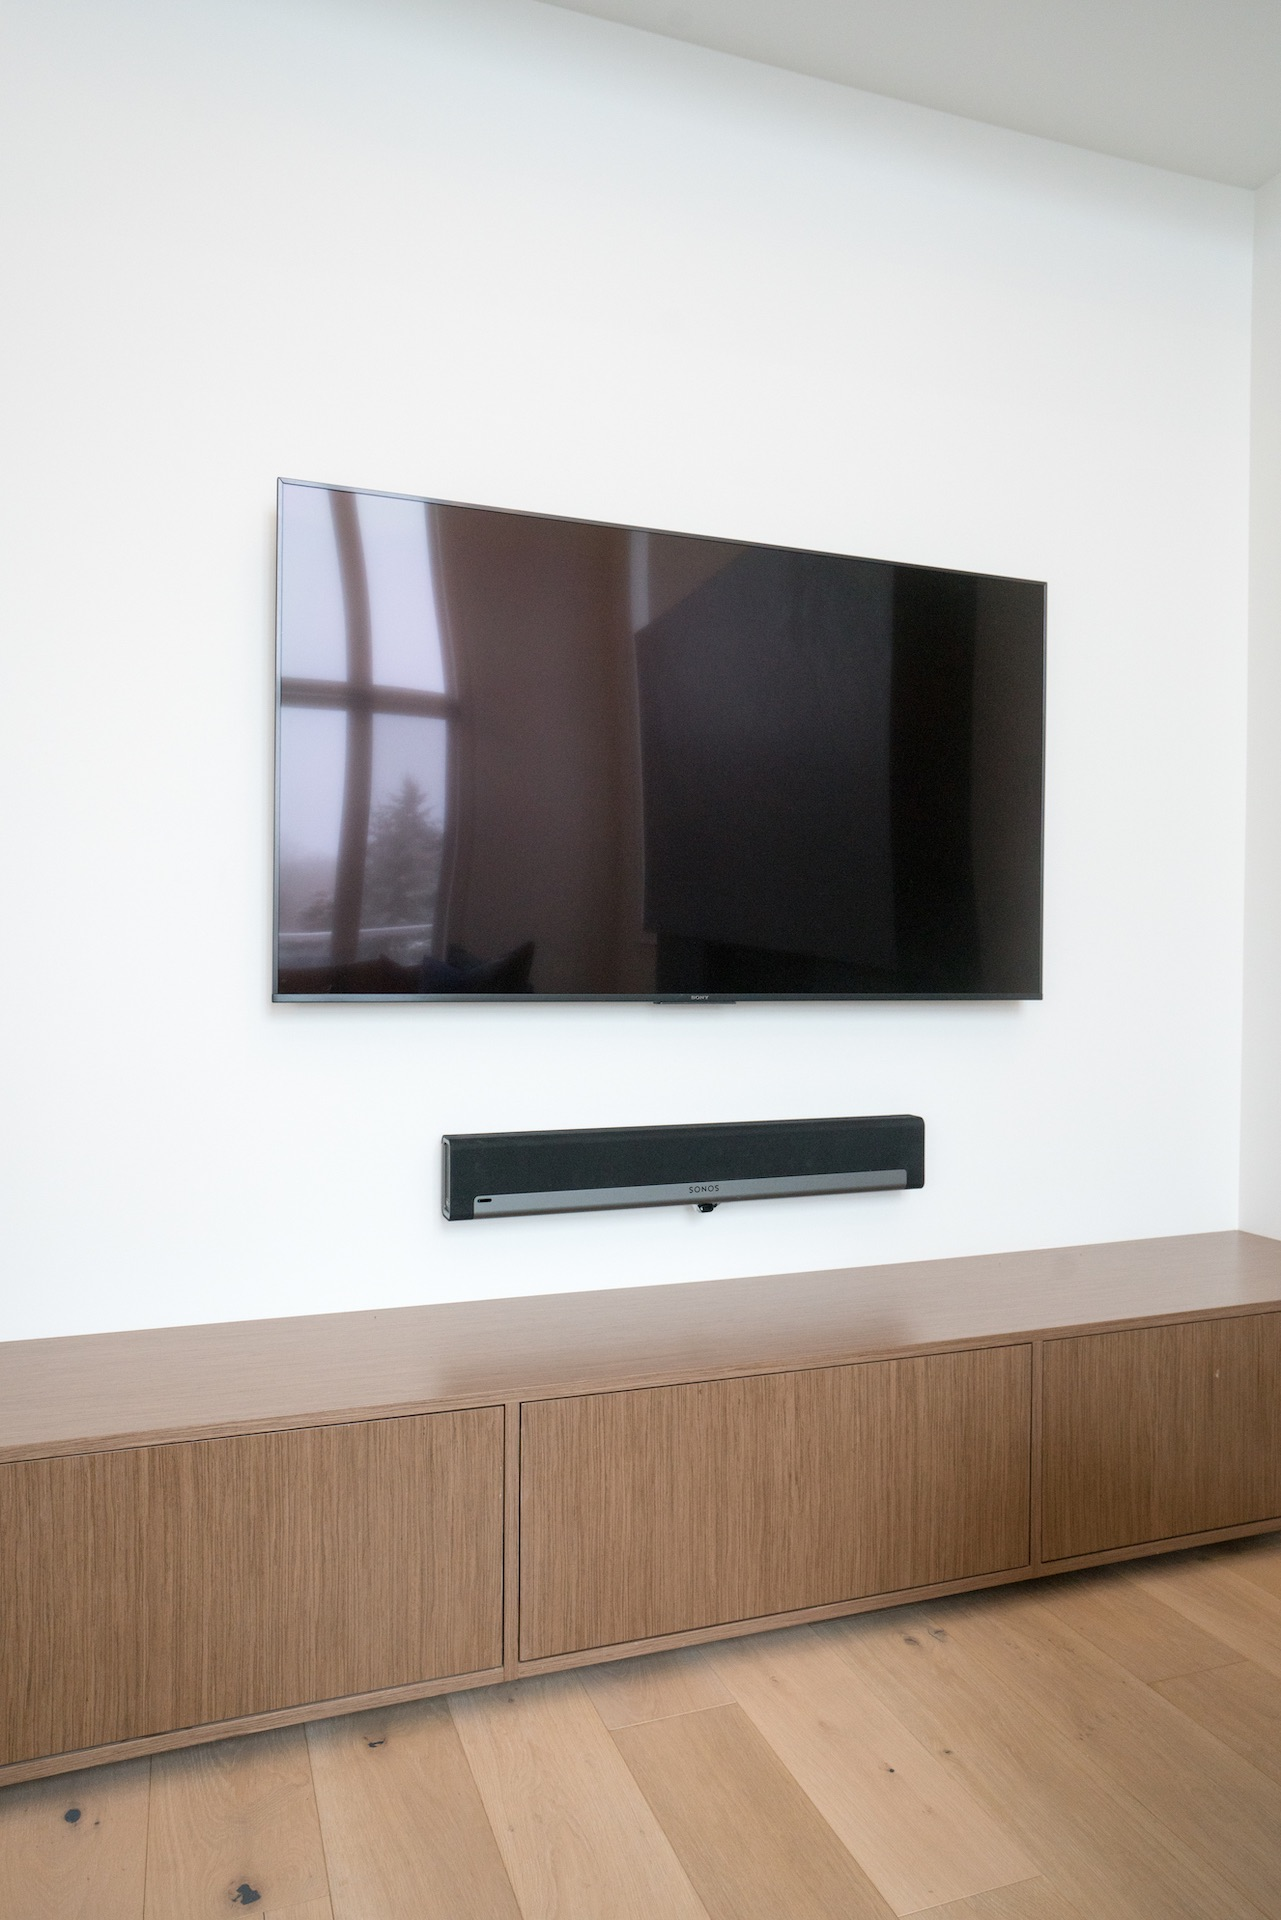 TV mounted on wall with wood